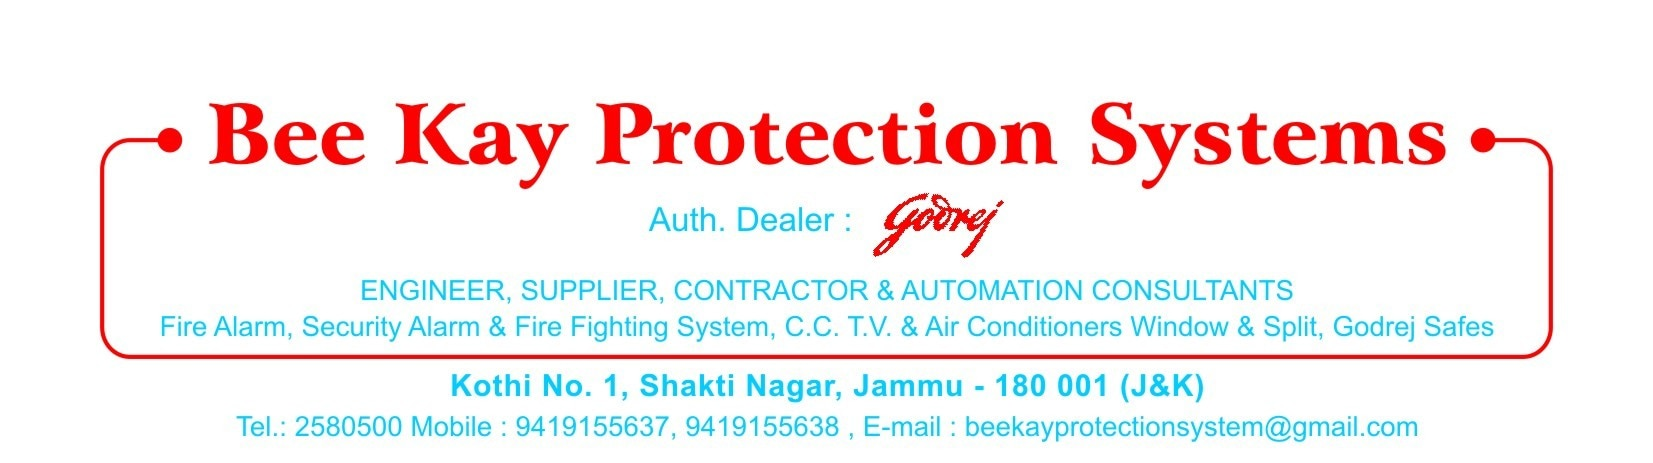 Bee Kay Protection Systems